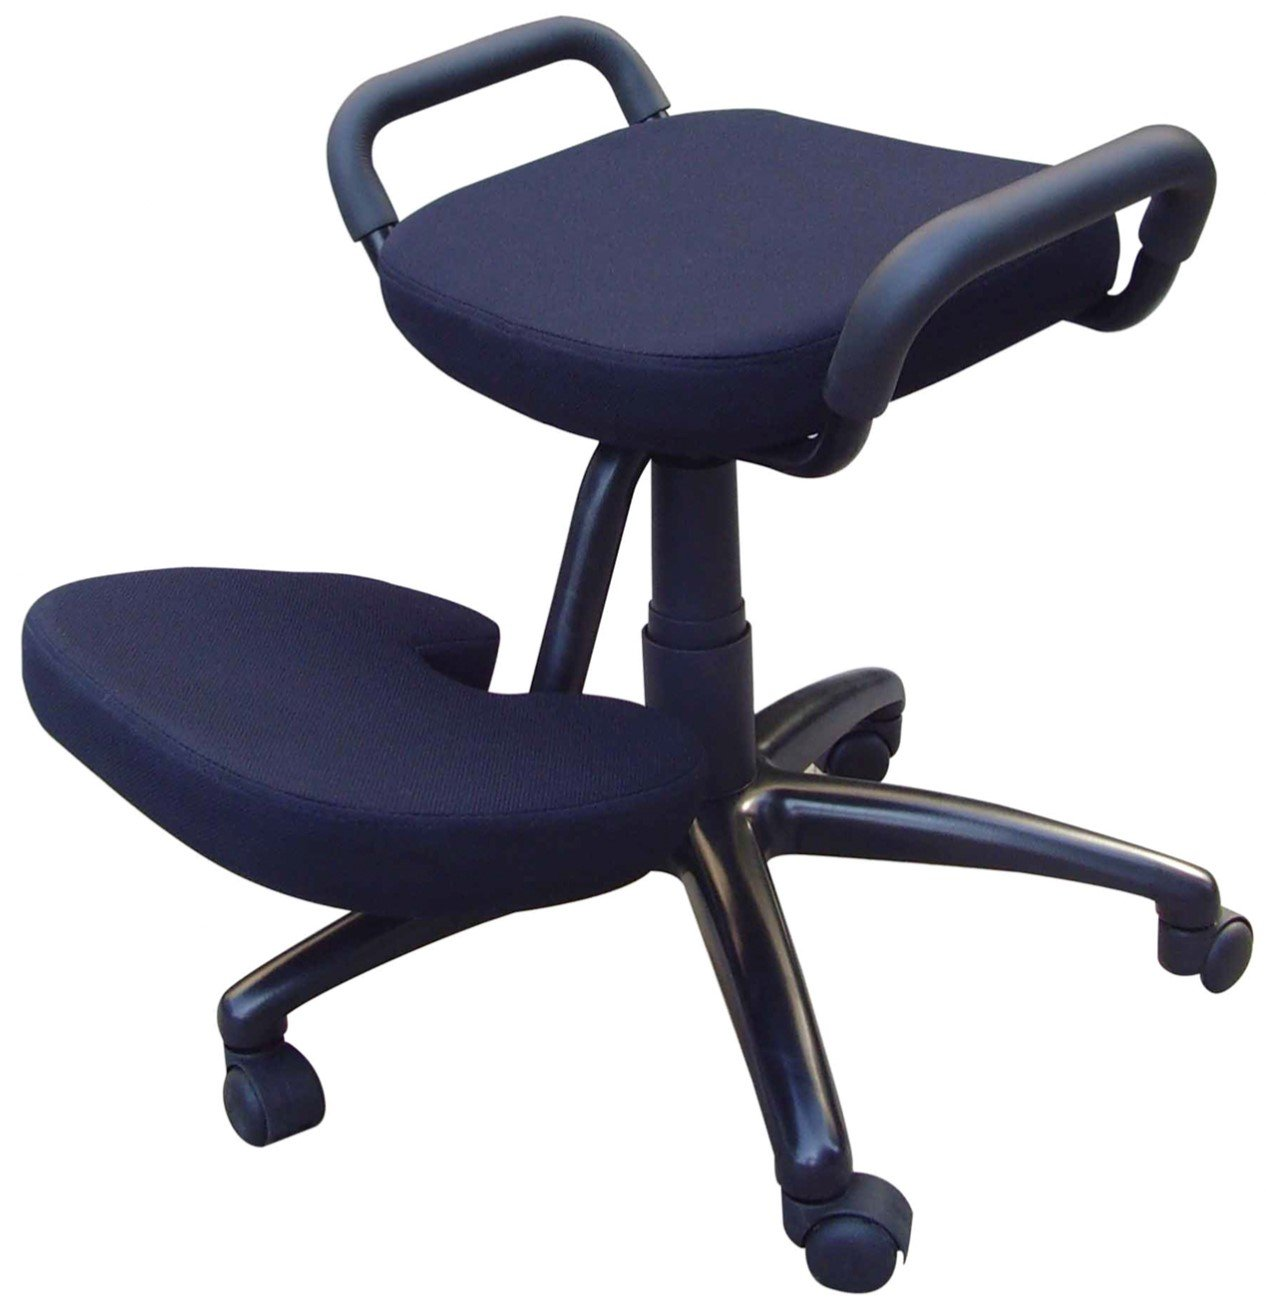 Ergonomic office chair kneeling posture - Ergonomic Office Chair Kneeling Posture 21